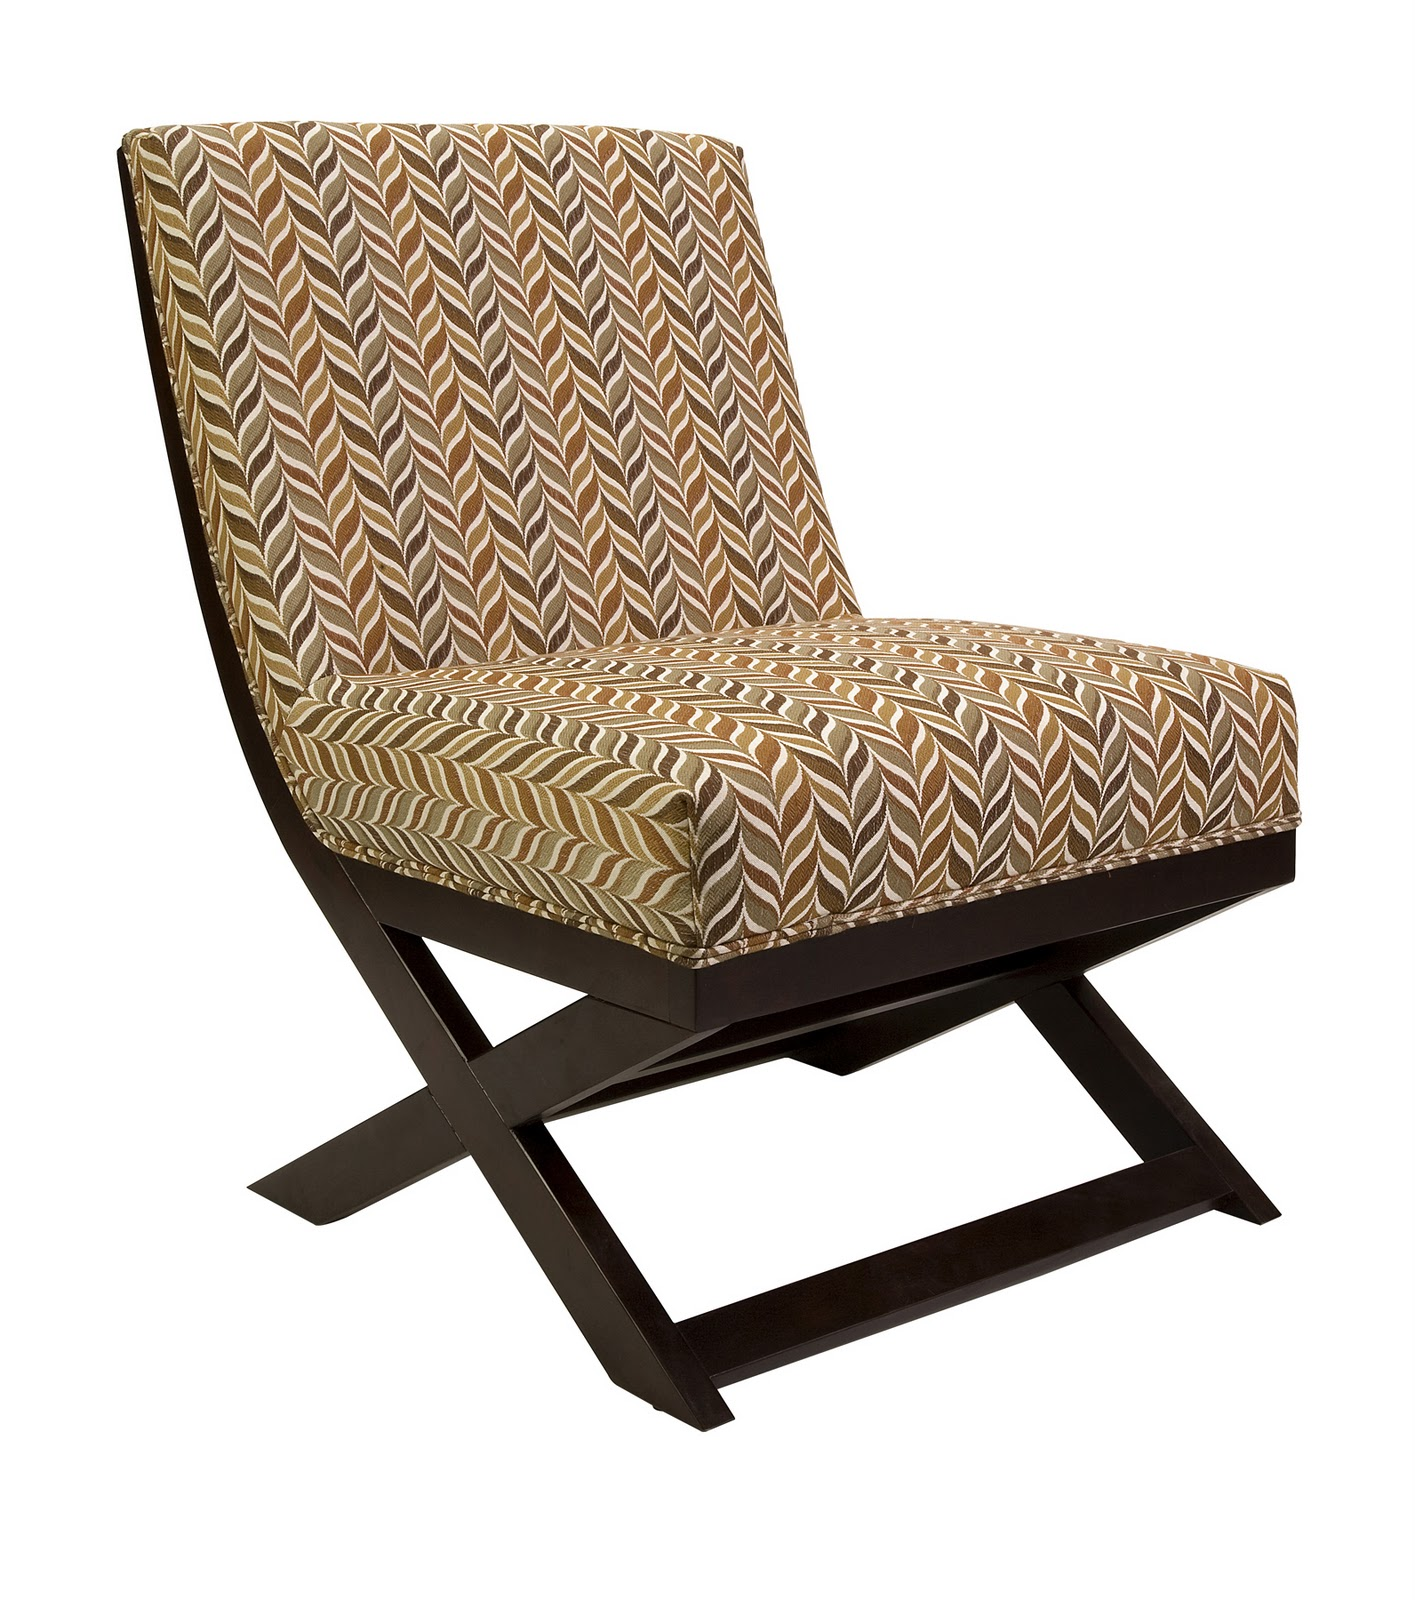 Gift home today new furniture accessories in for New style chair